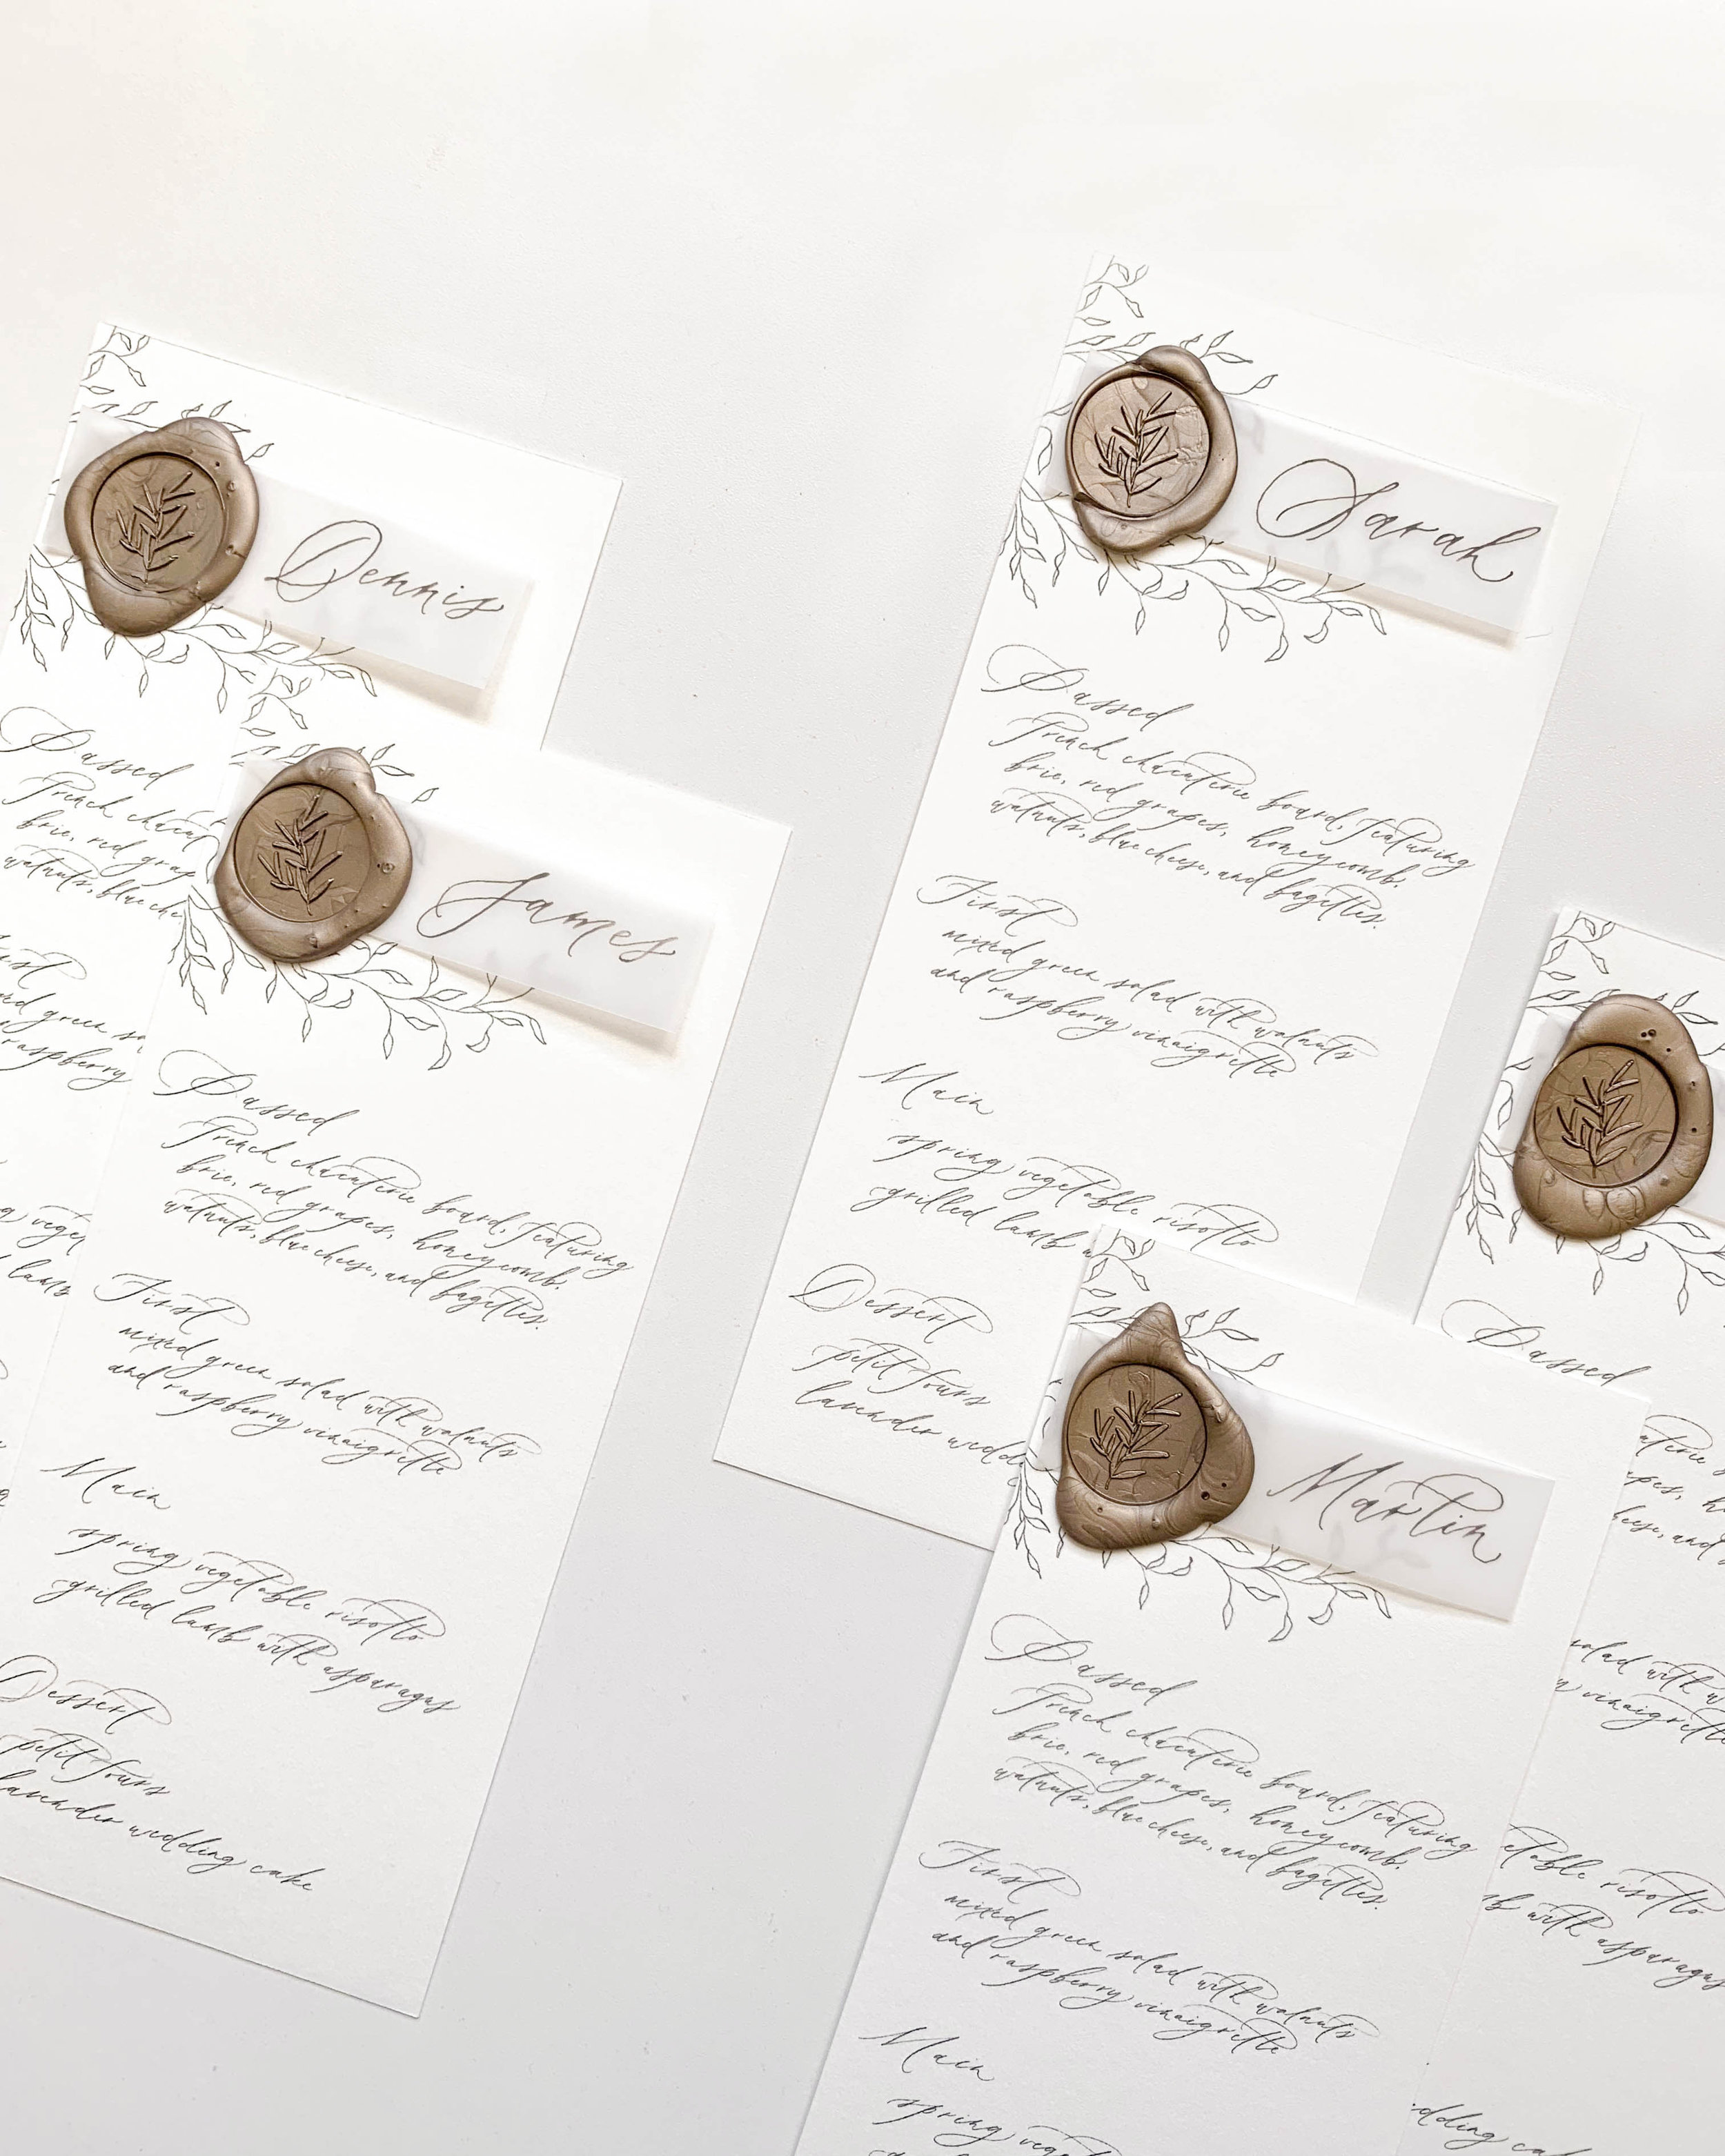 Fine art handmade paper wedding invitations with a botanical crest and venue illustration. Full calligraphy, vintage postage. Vintage, romantic, and elegant wedding stationery.